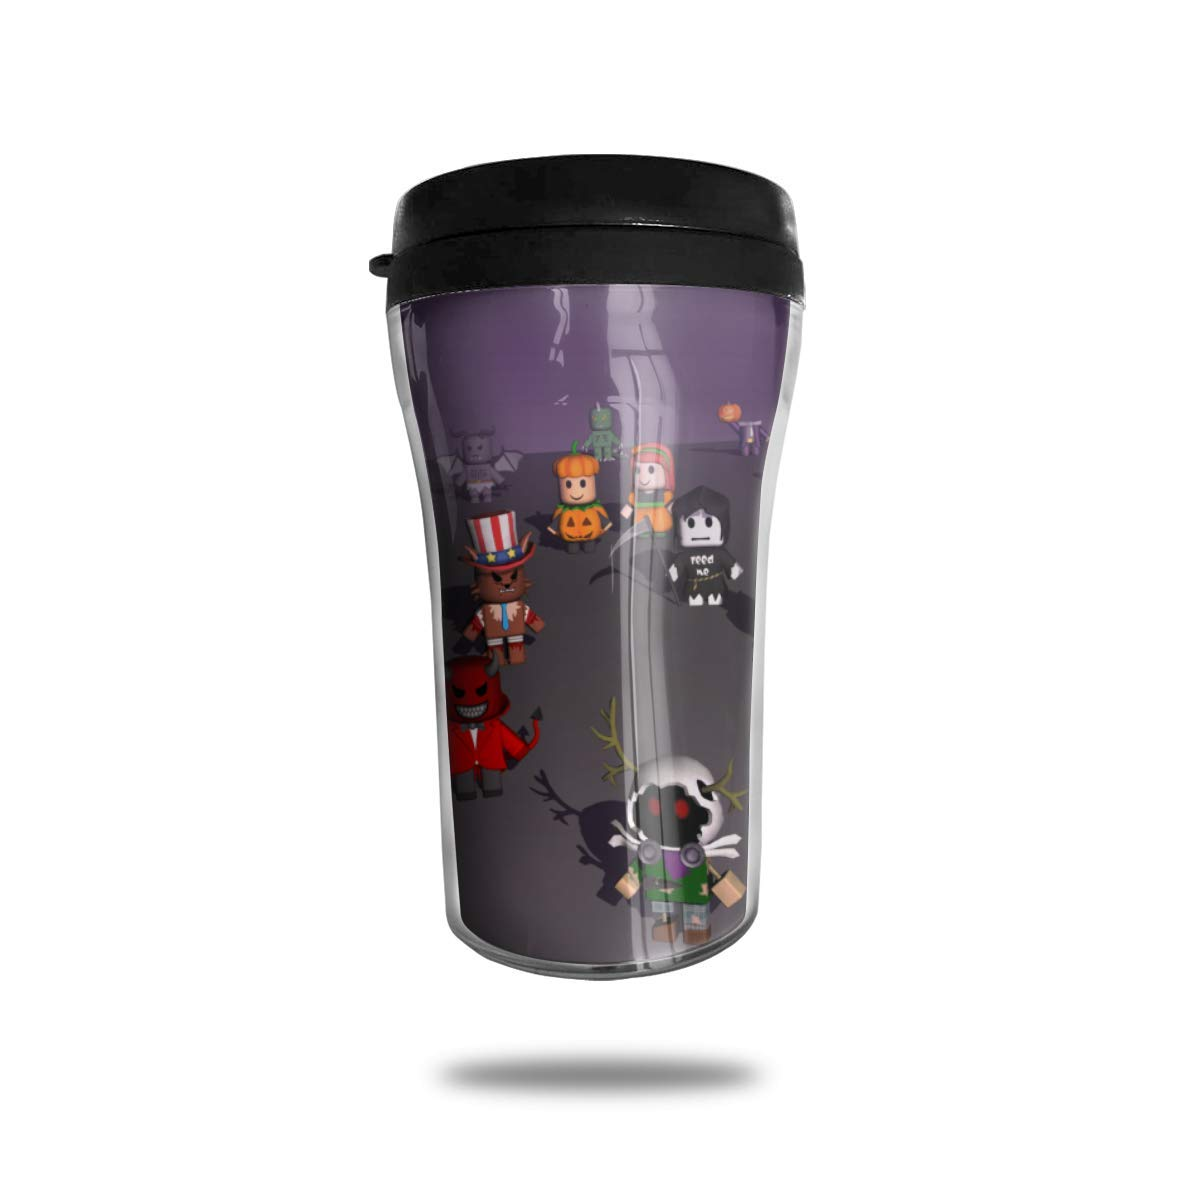 Ro-bl-ox Travel Coffee Mug Double Wall Insulated Coffee Cup Mini Travel Car Mug Water Bottle Taza de café